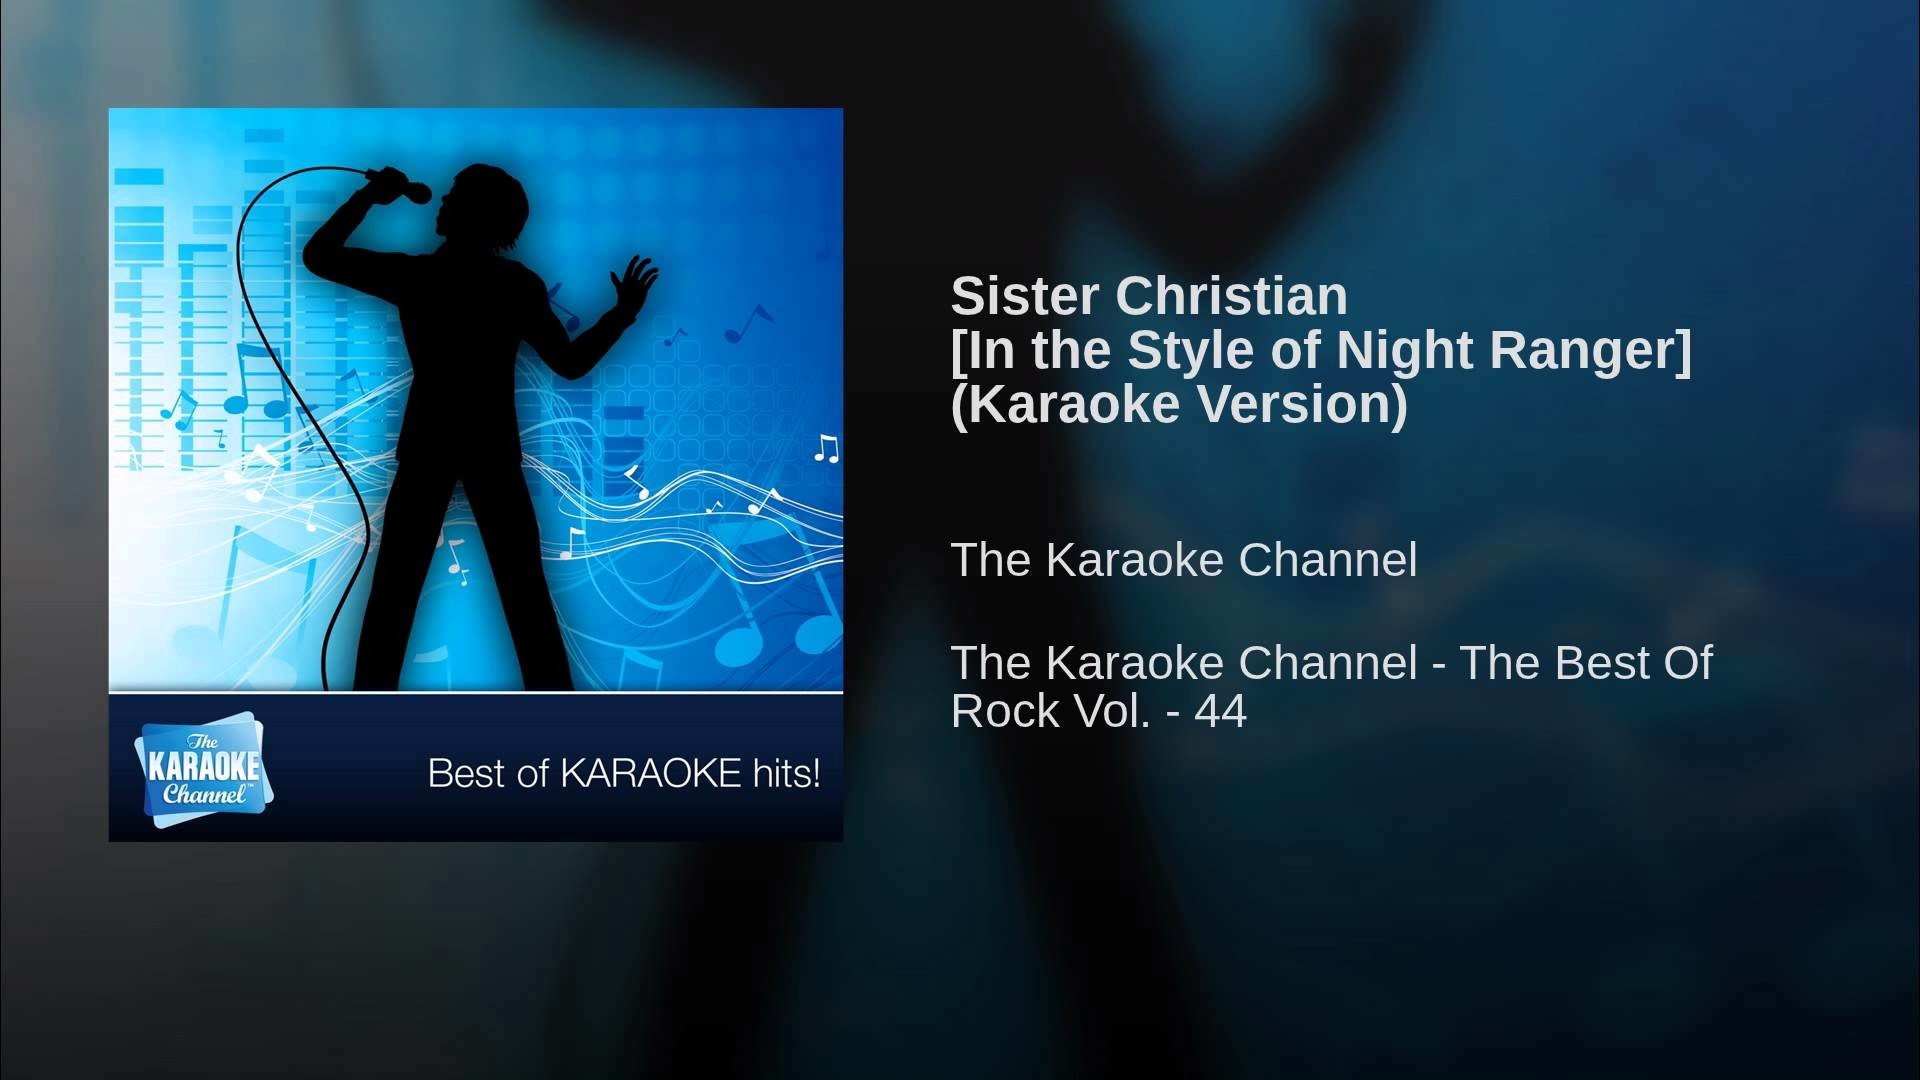 1920x1080 Sister Christian [In the Style of Night Ranger] (Karaoke Version)